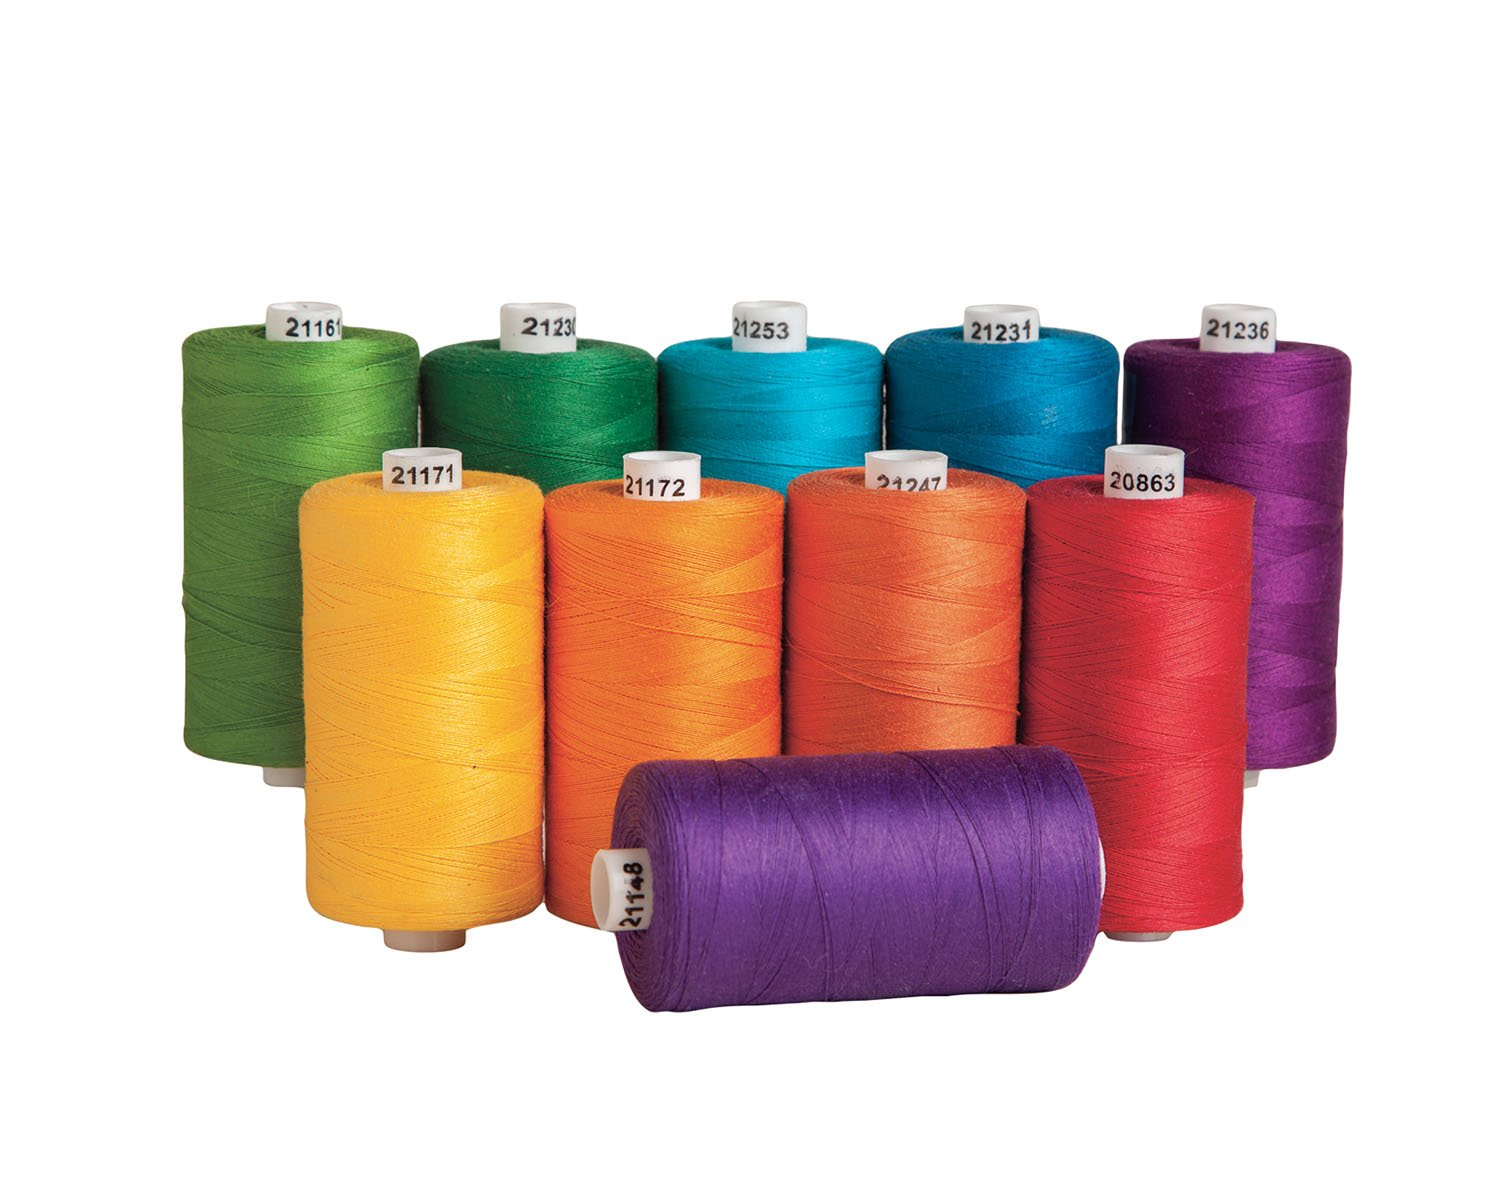 Connecting Threads 100% Cotton Thread Sets - 1200 Yard Spools (Color Wheel - Set of 10) by Connecting Threads